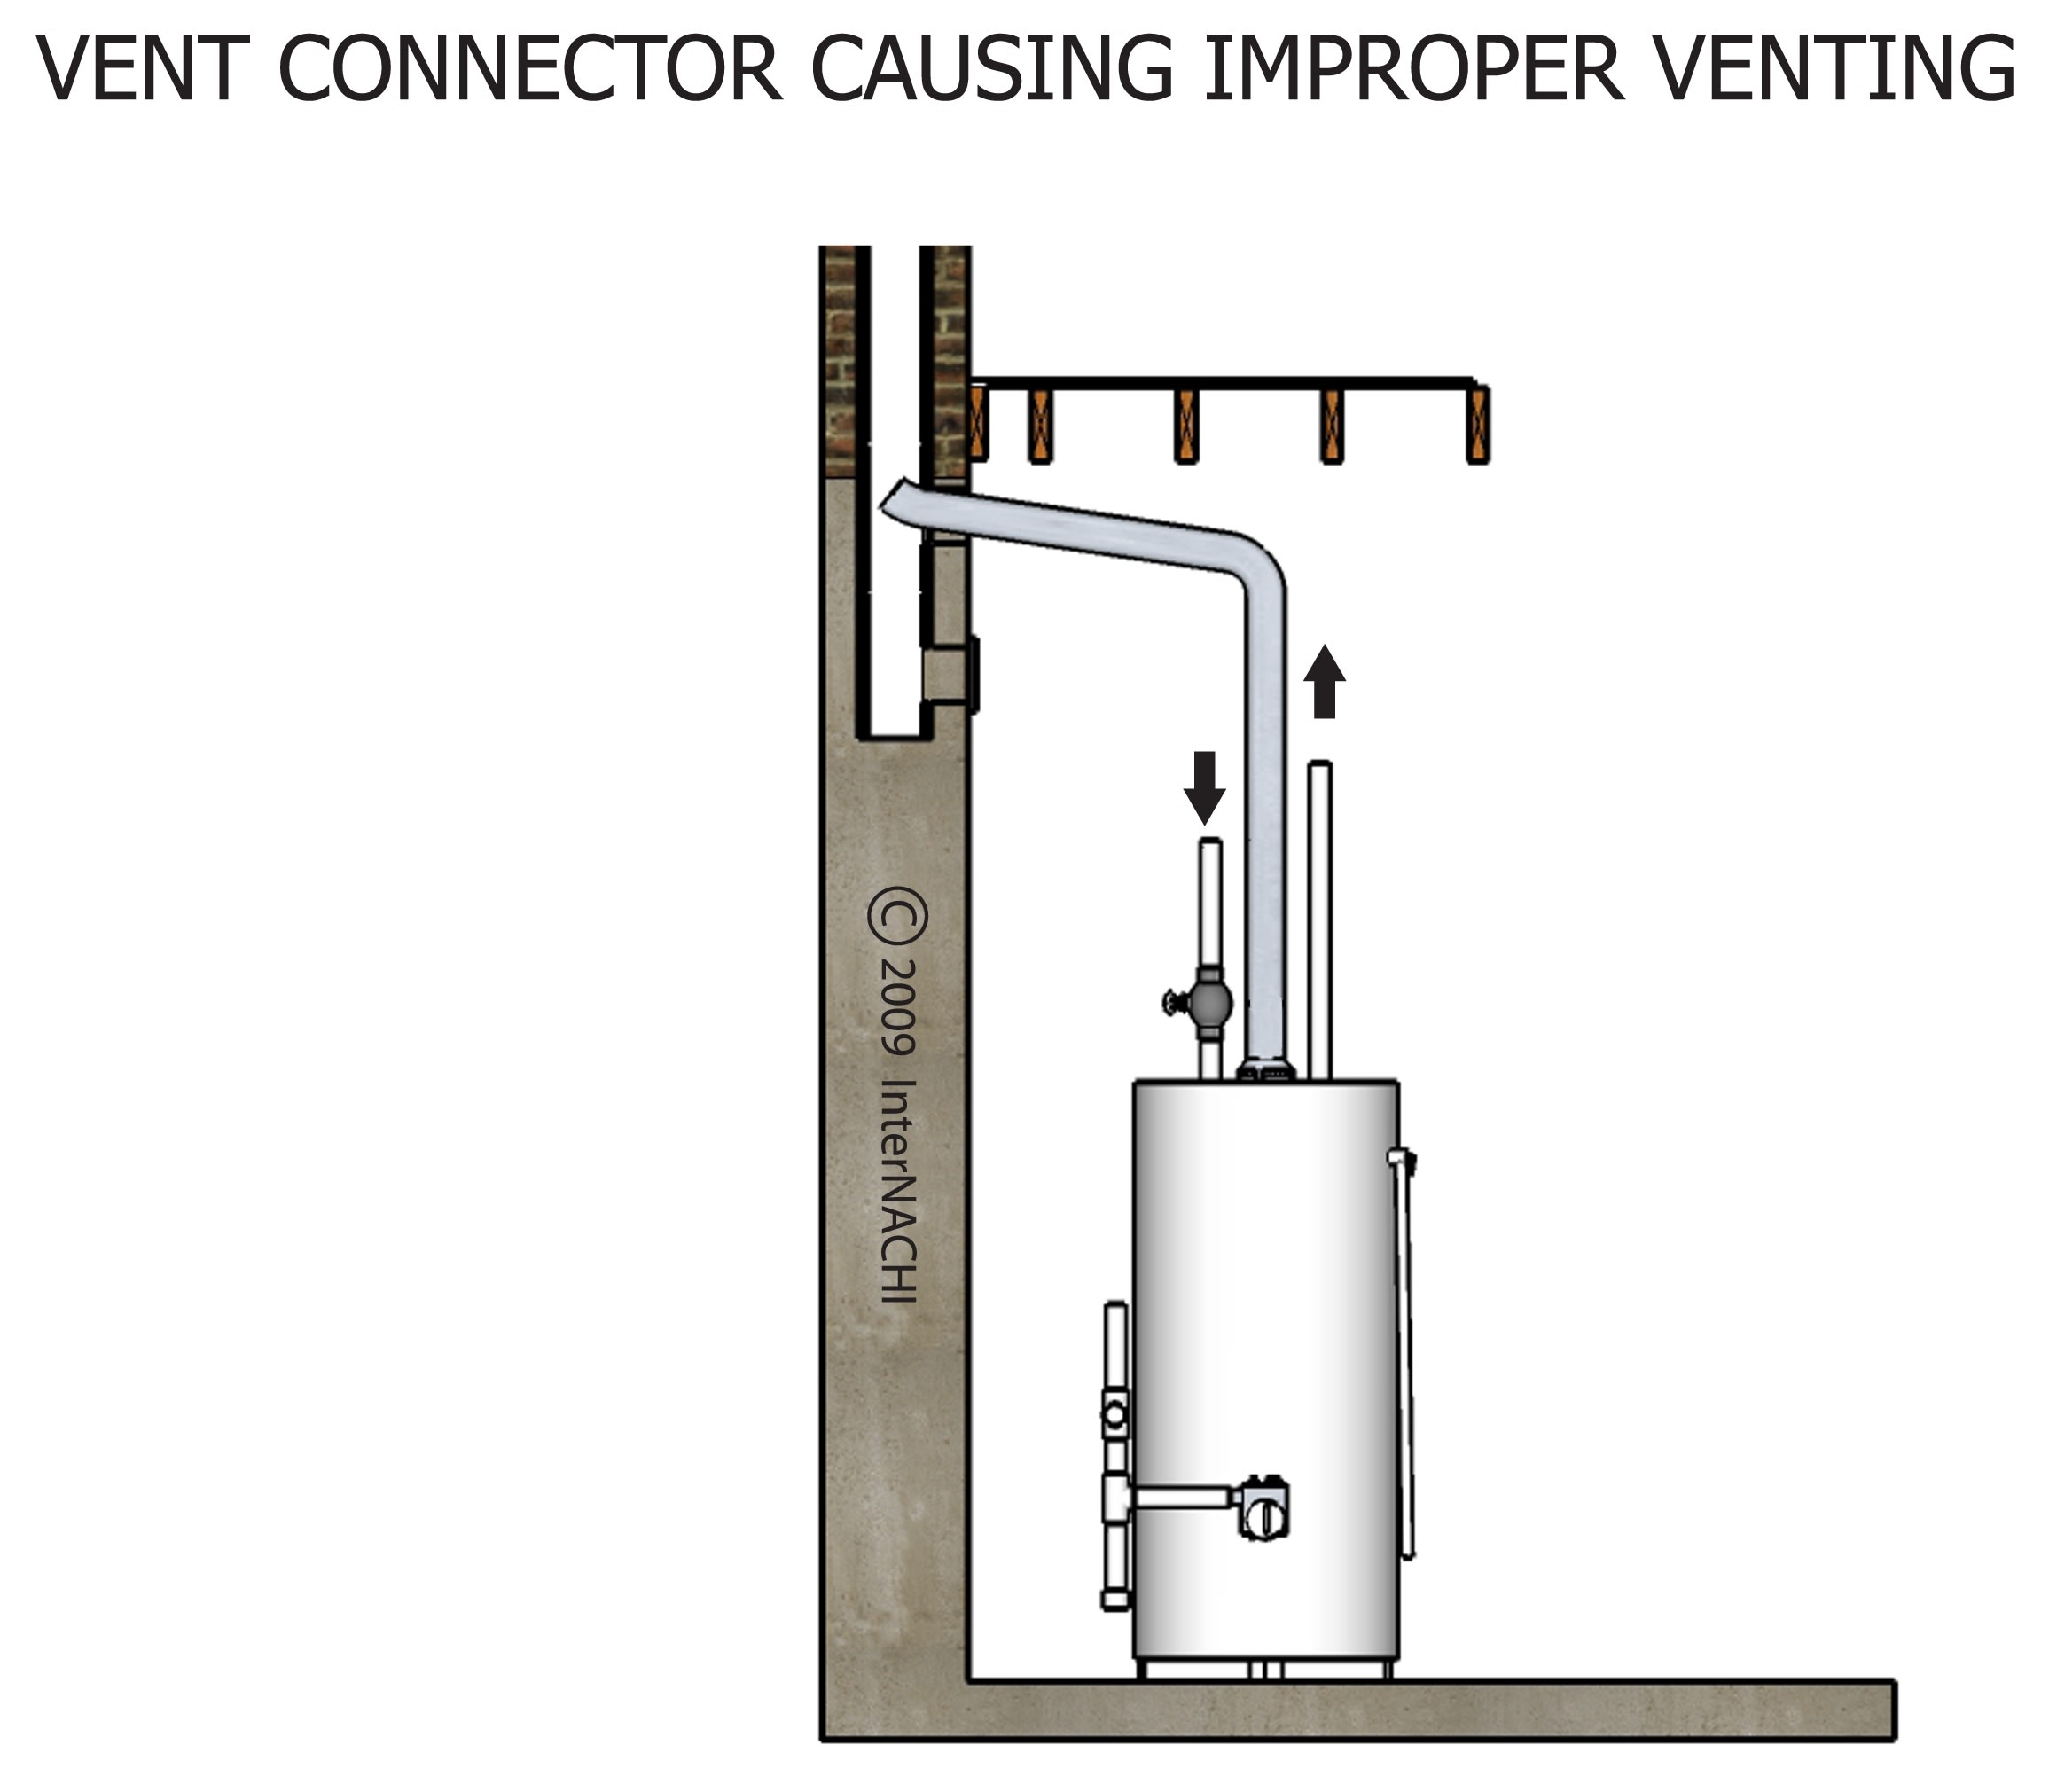 Improper vent connector.